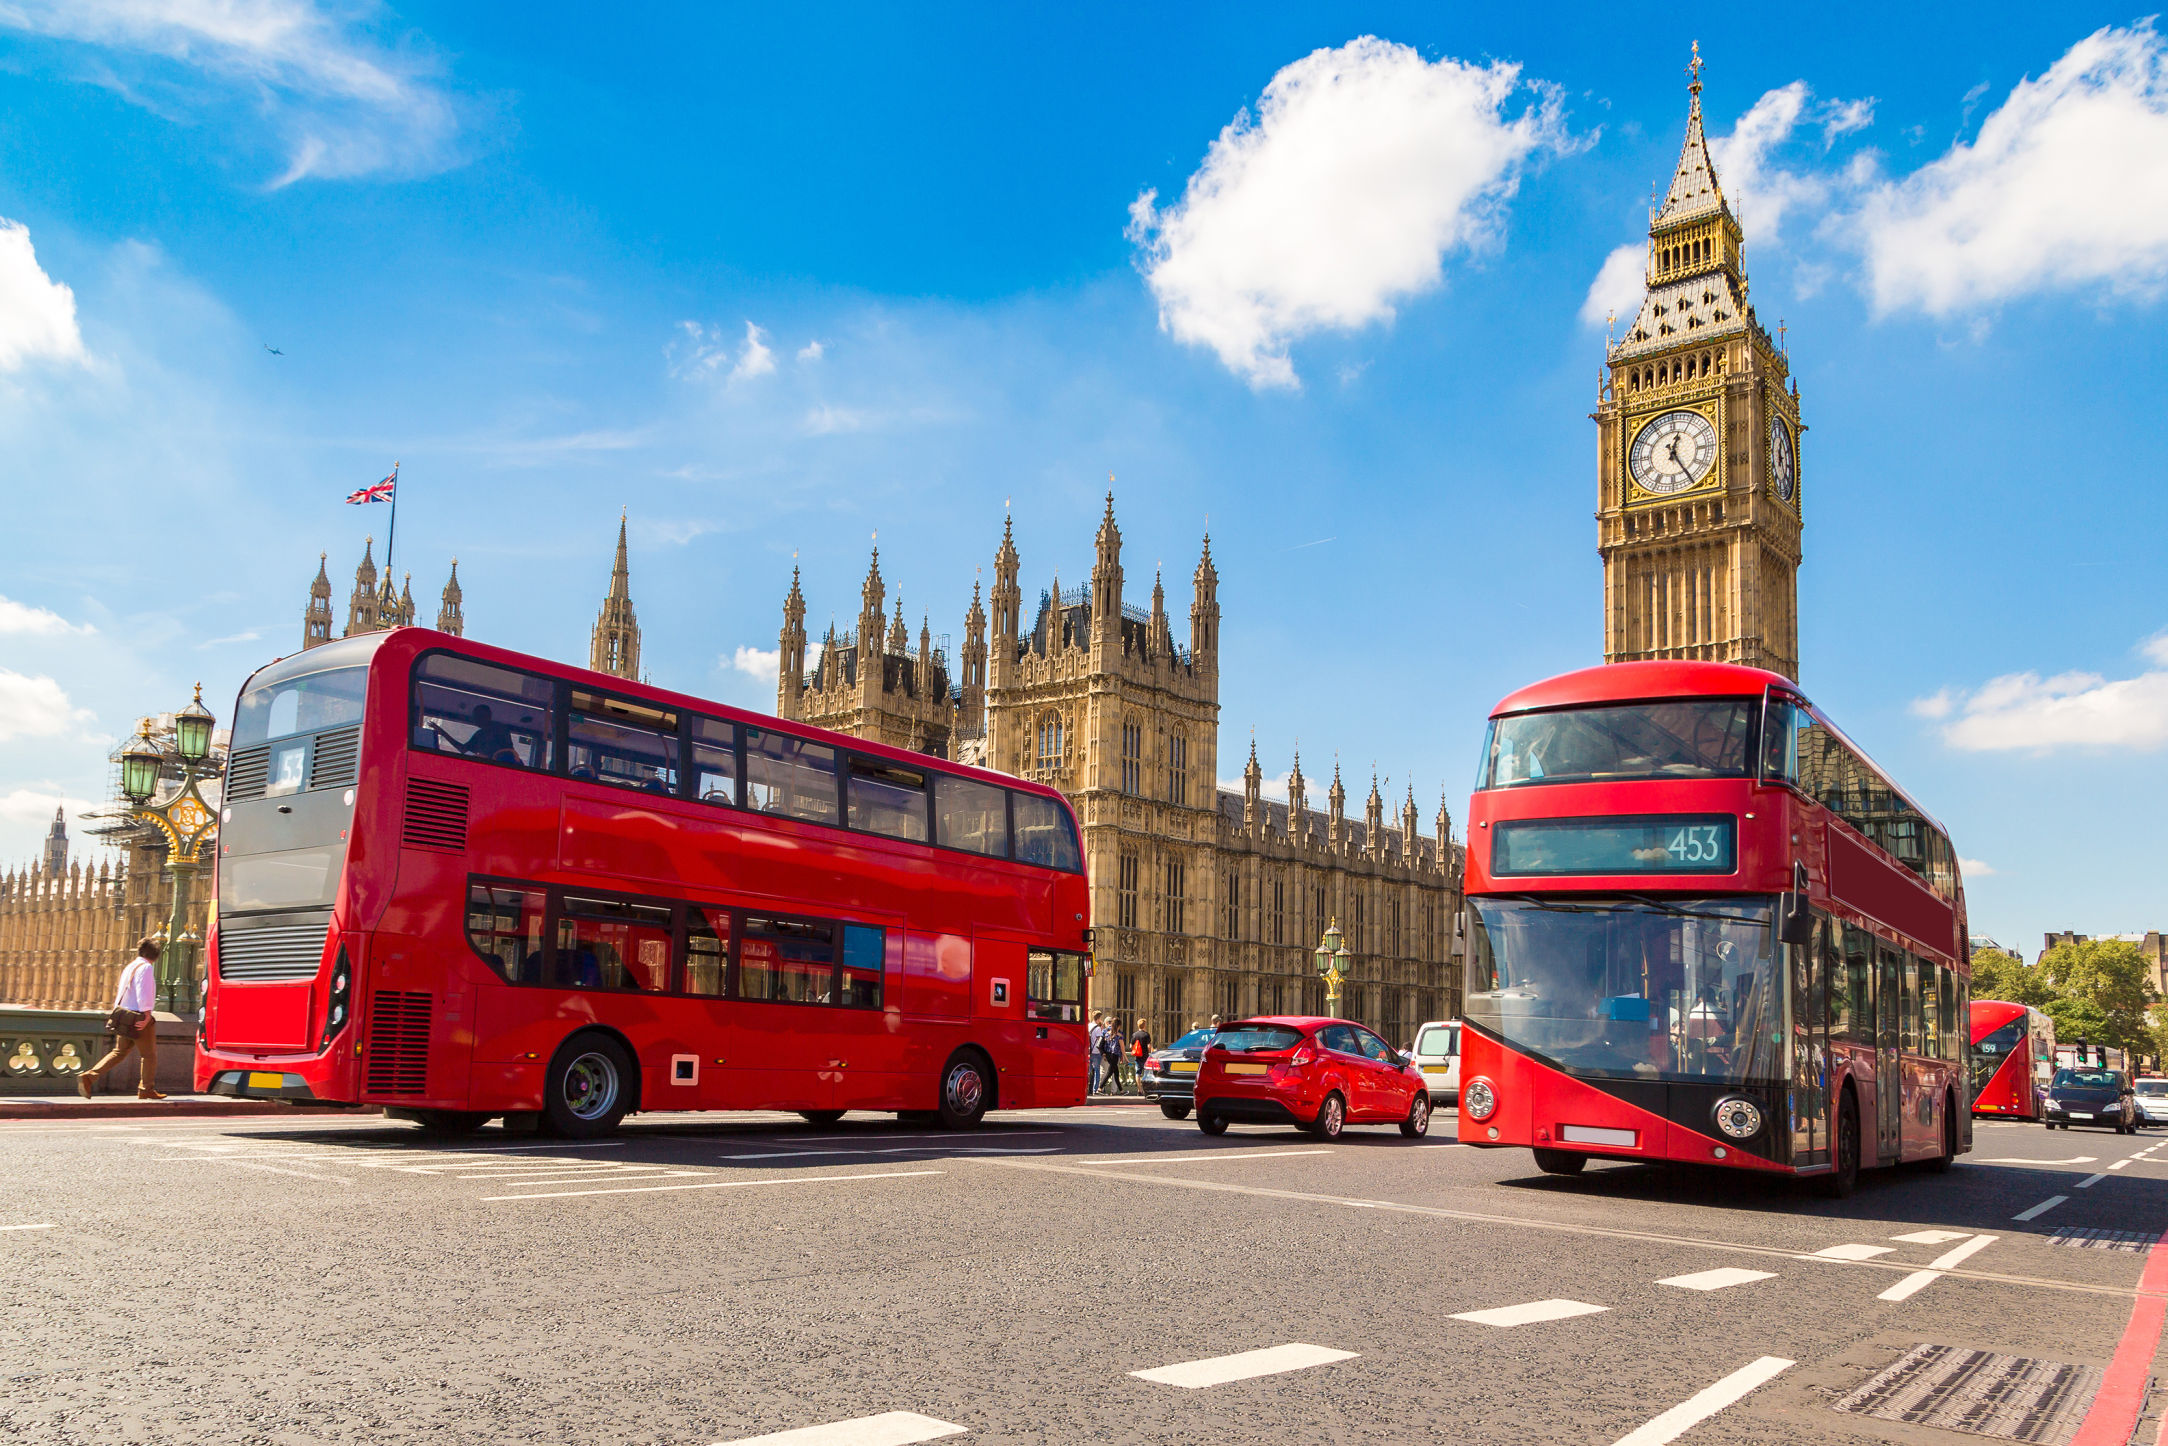 Buses in London, England.